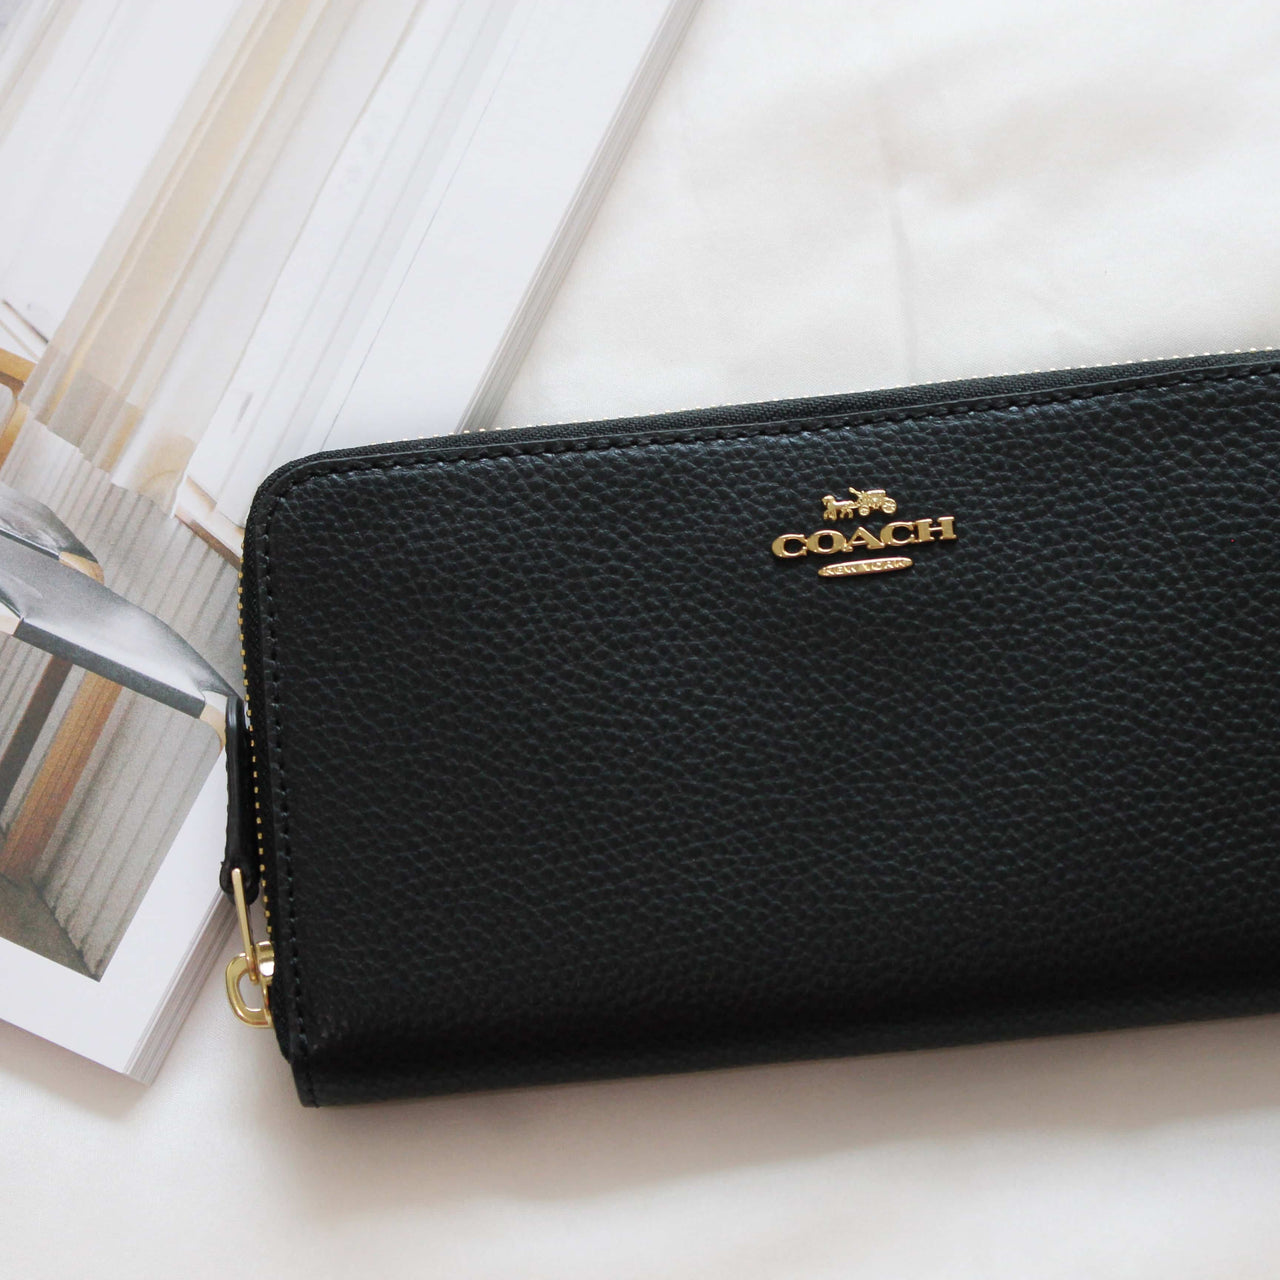 COACH ACCORDION ZIP WALLET IN POLISHED PEBBLE LEATHER - Lovely Madness